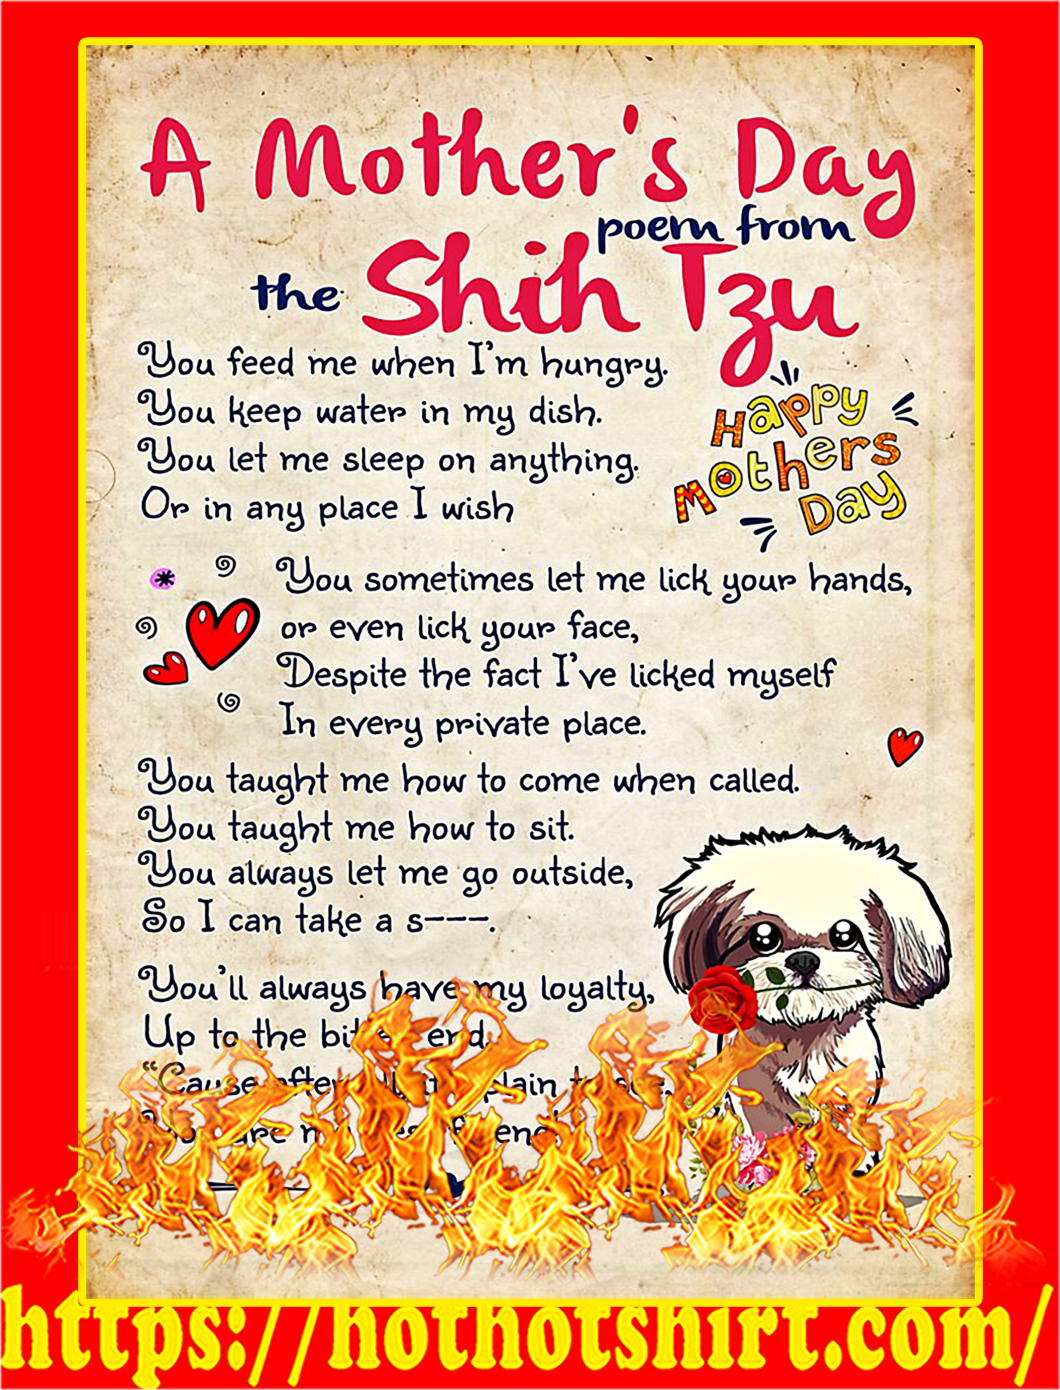 A mother's day poem from the shih tzu poster - A2